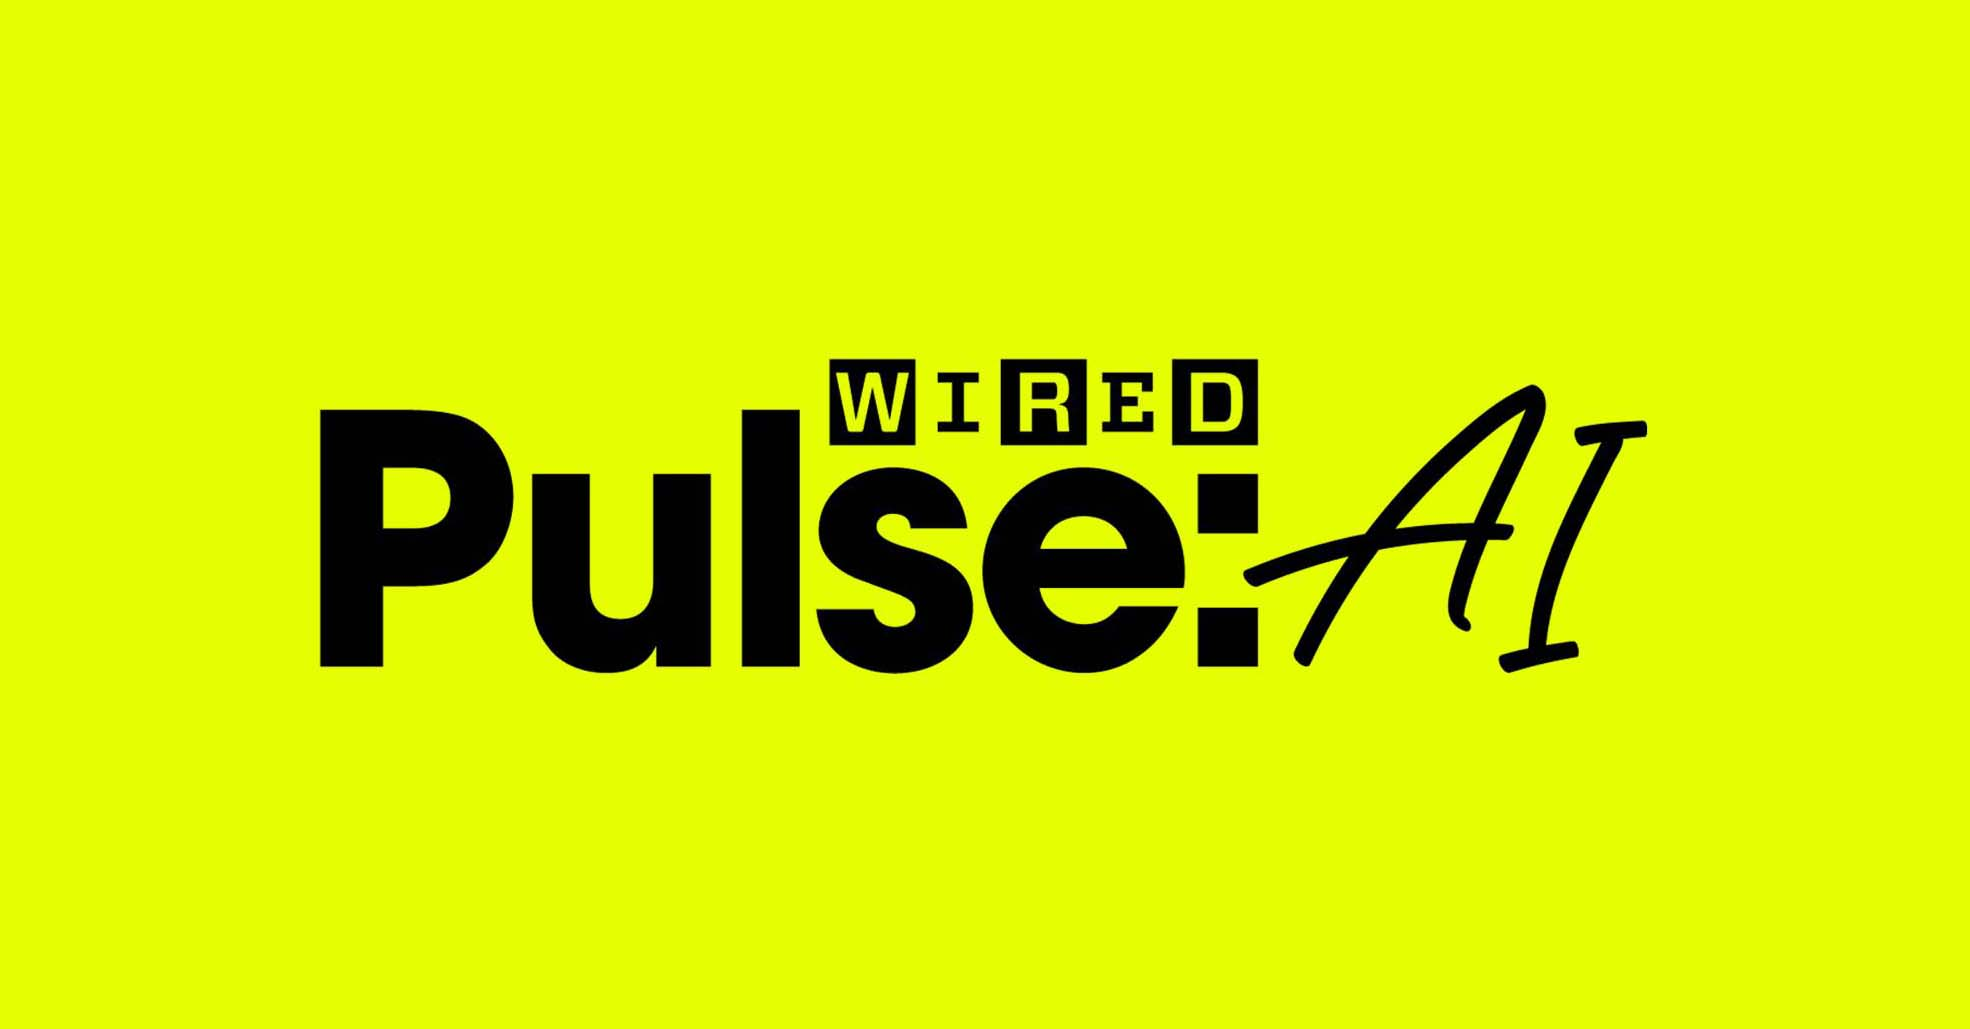 Event  Wired Pulse Ai